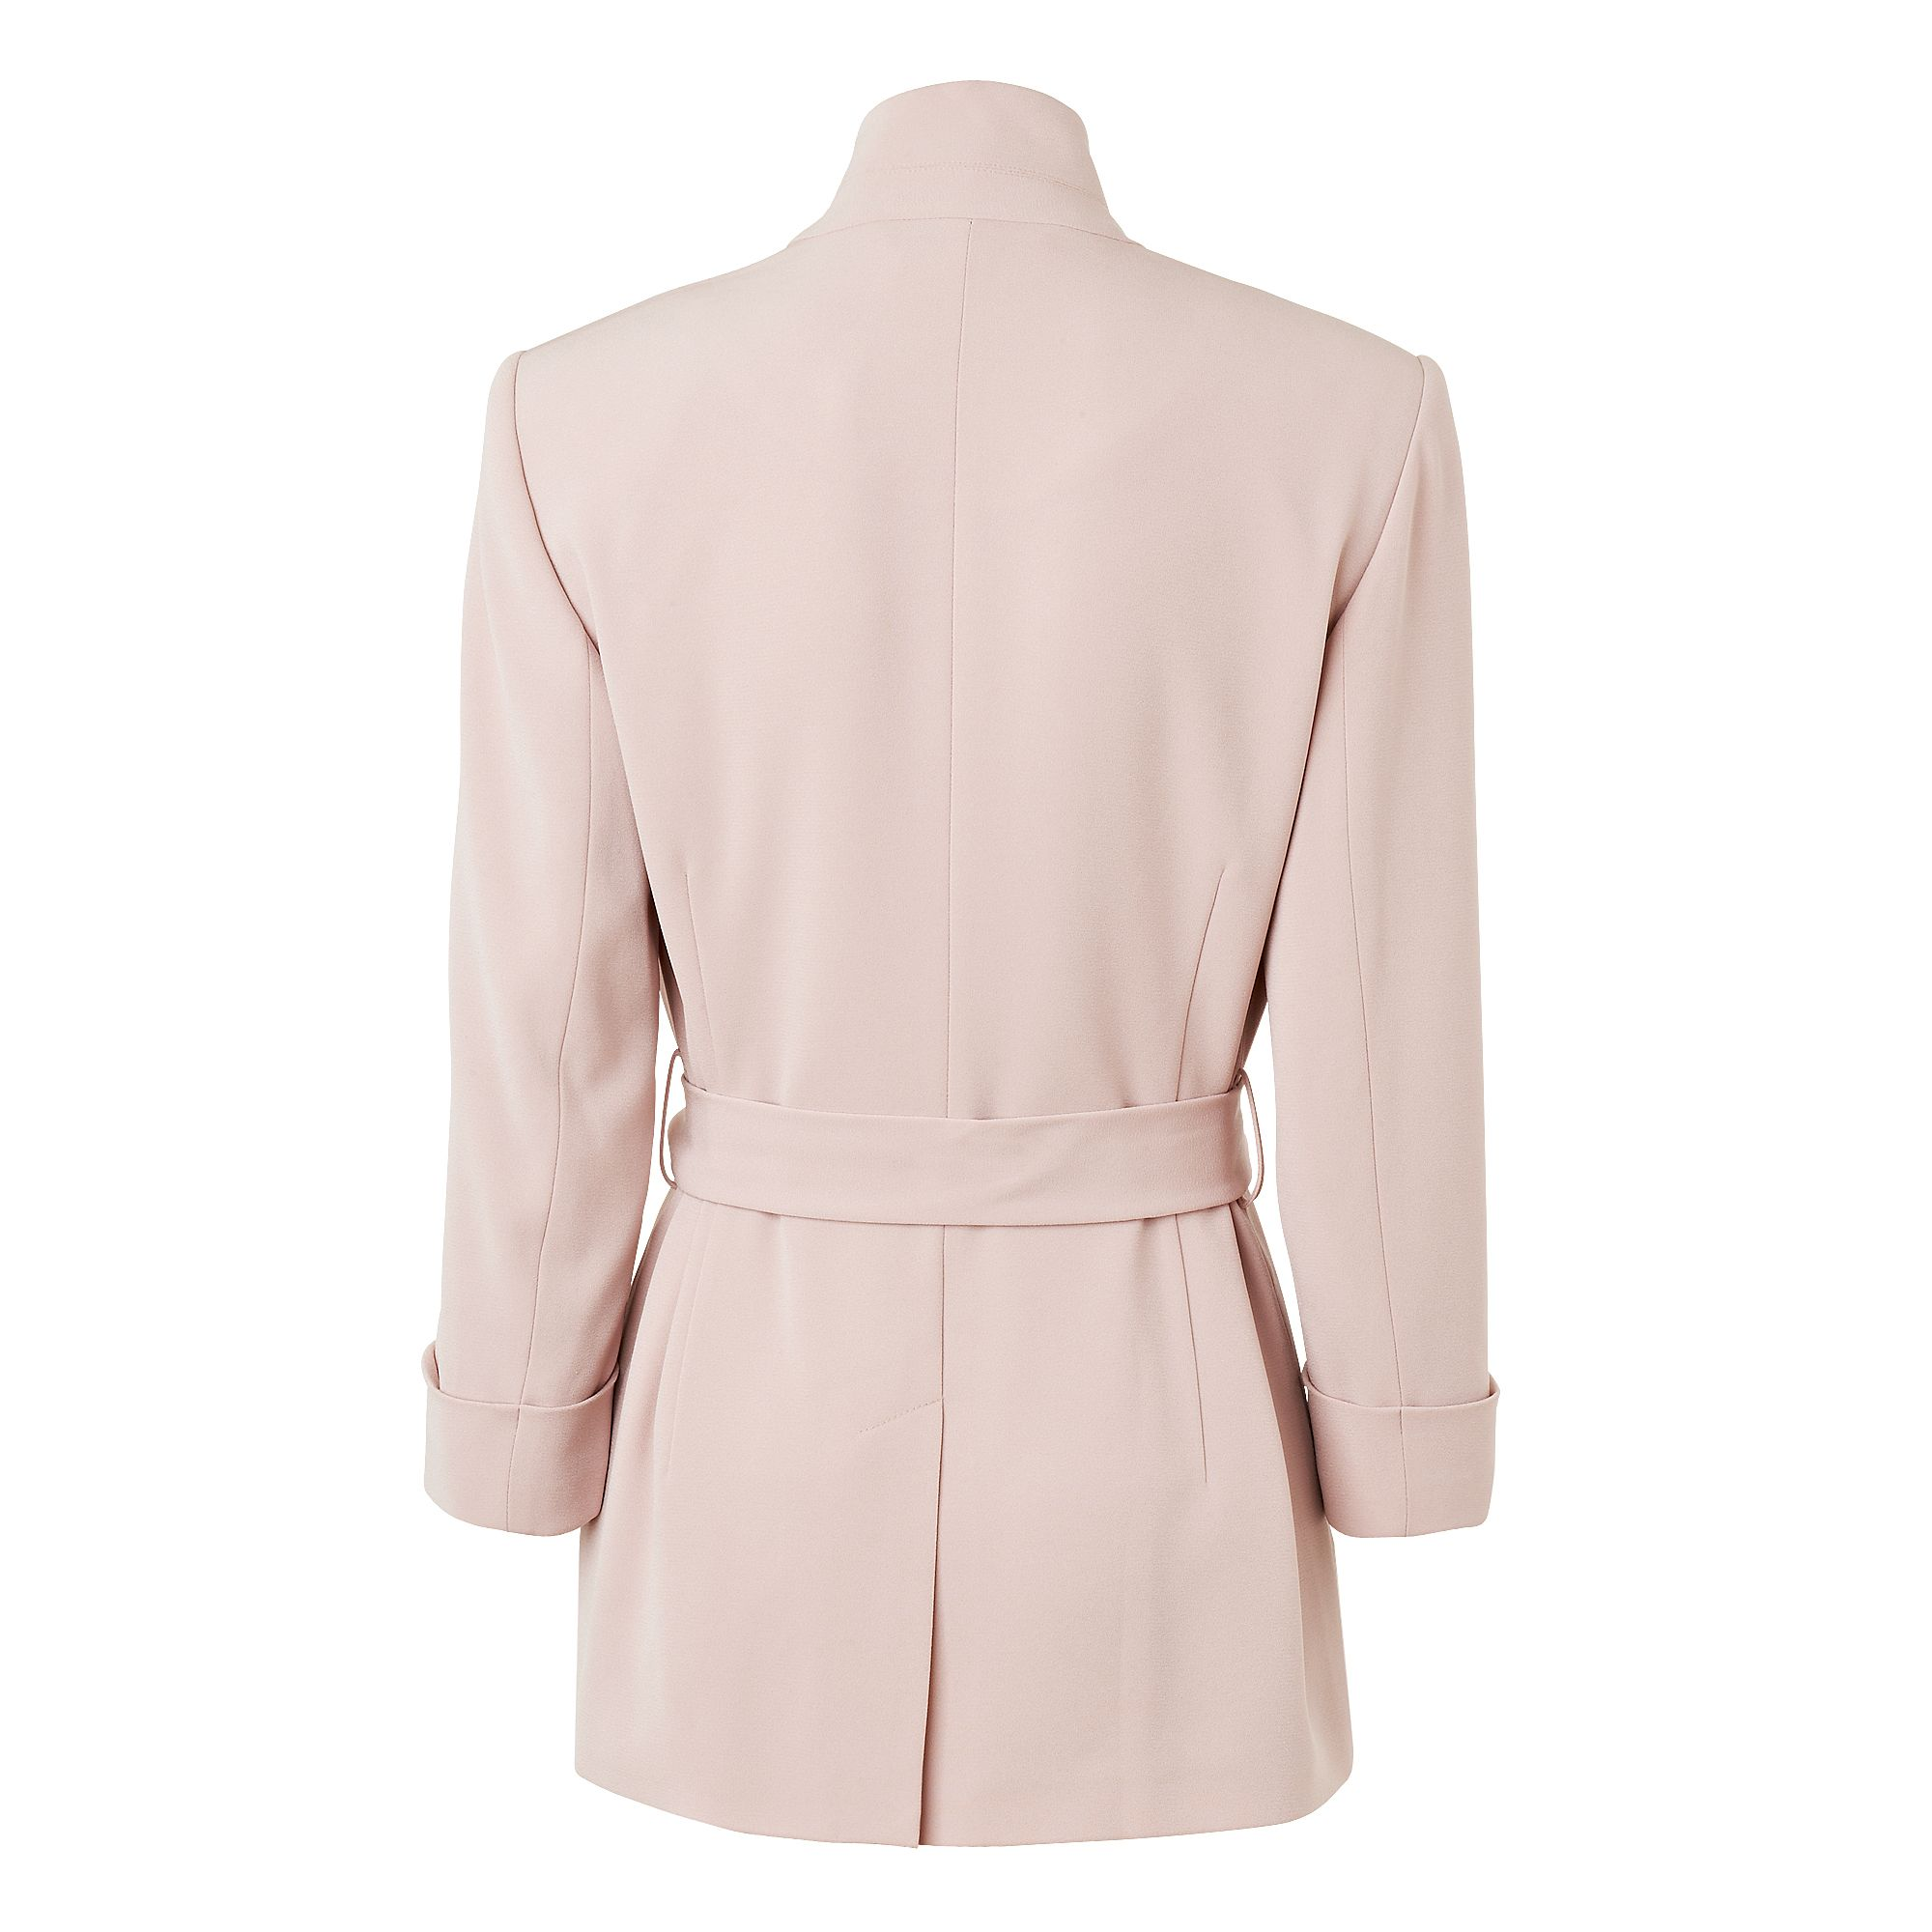 Dolly Tie Belt Jacket